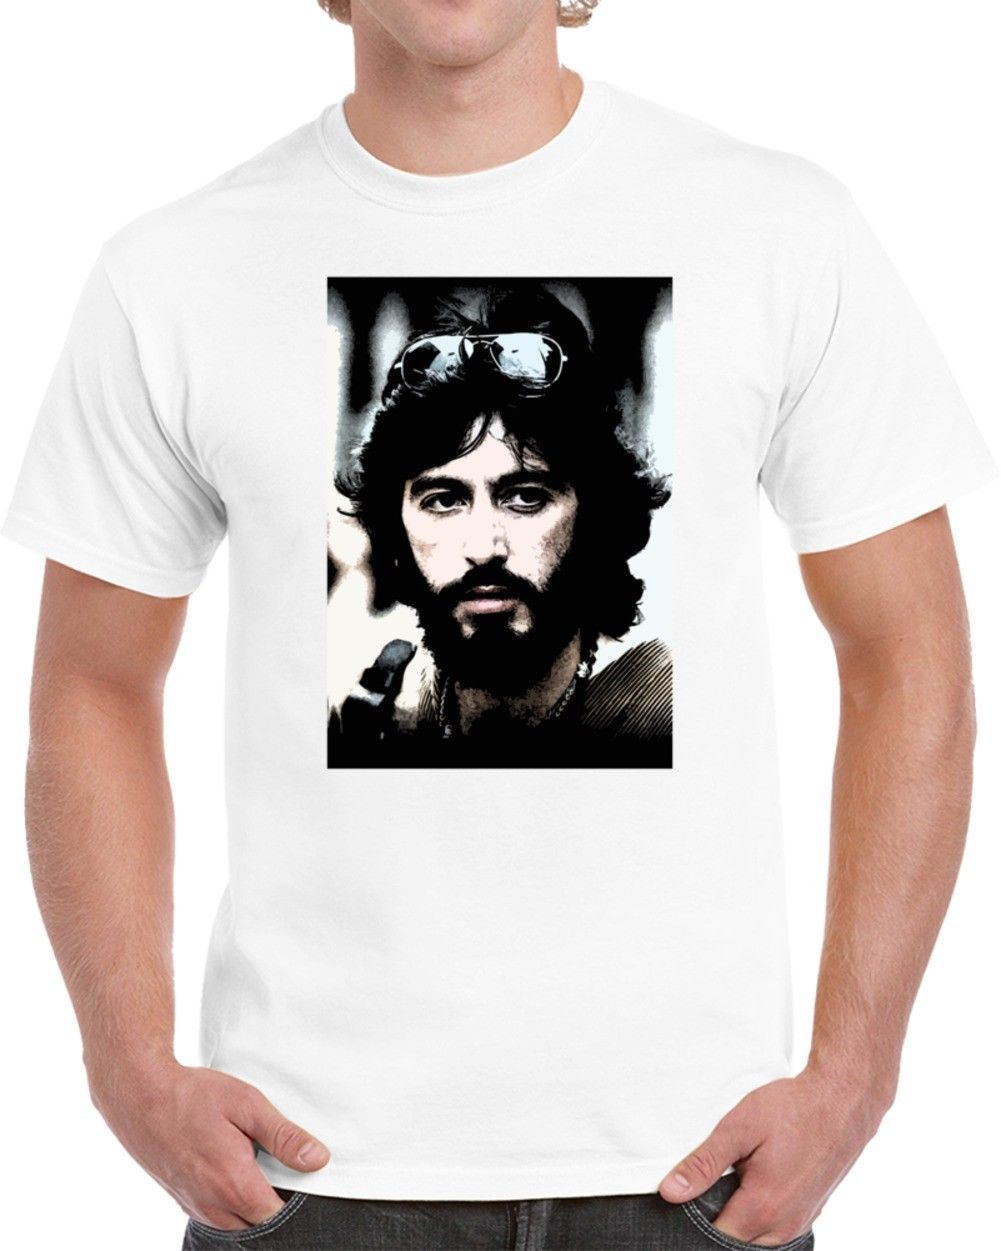 Serpico Al Pacino 70s Cop Cult Movie Cool Fan T Shirt Cool Casual pride t shirt men Unisex New Fashion tshirt free shipping image